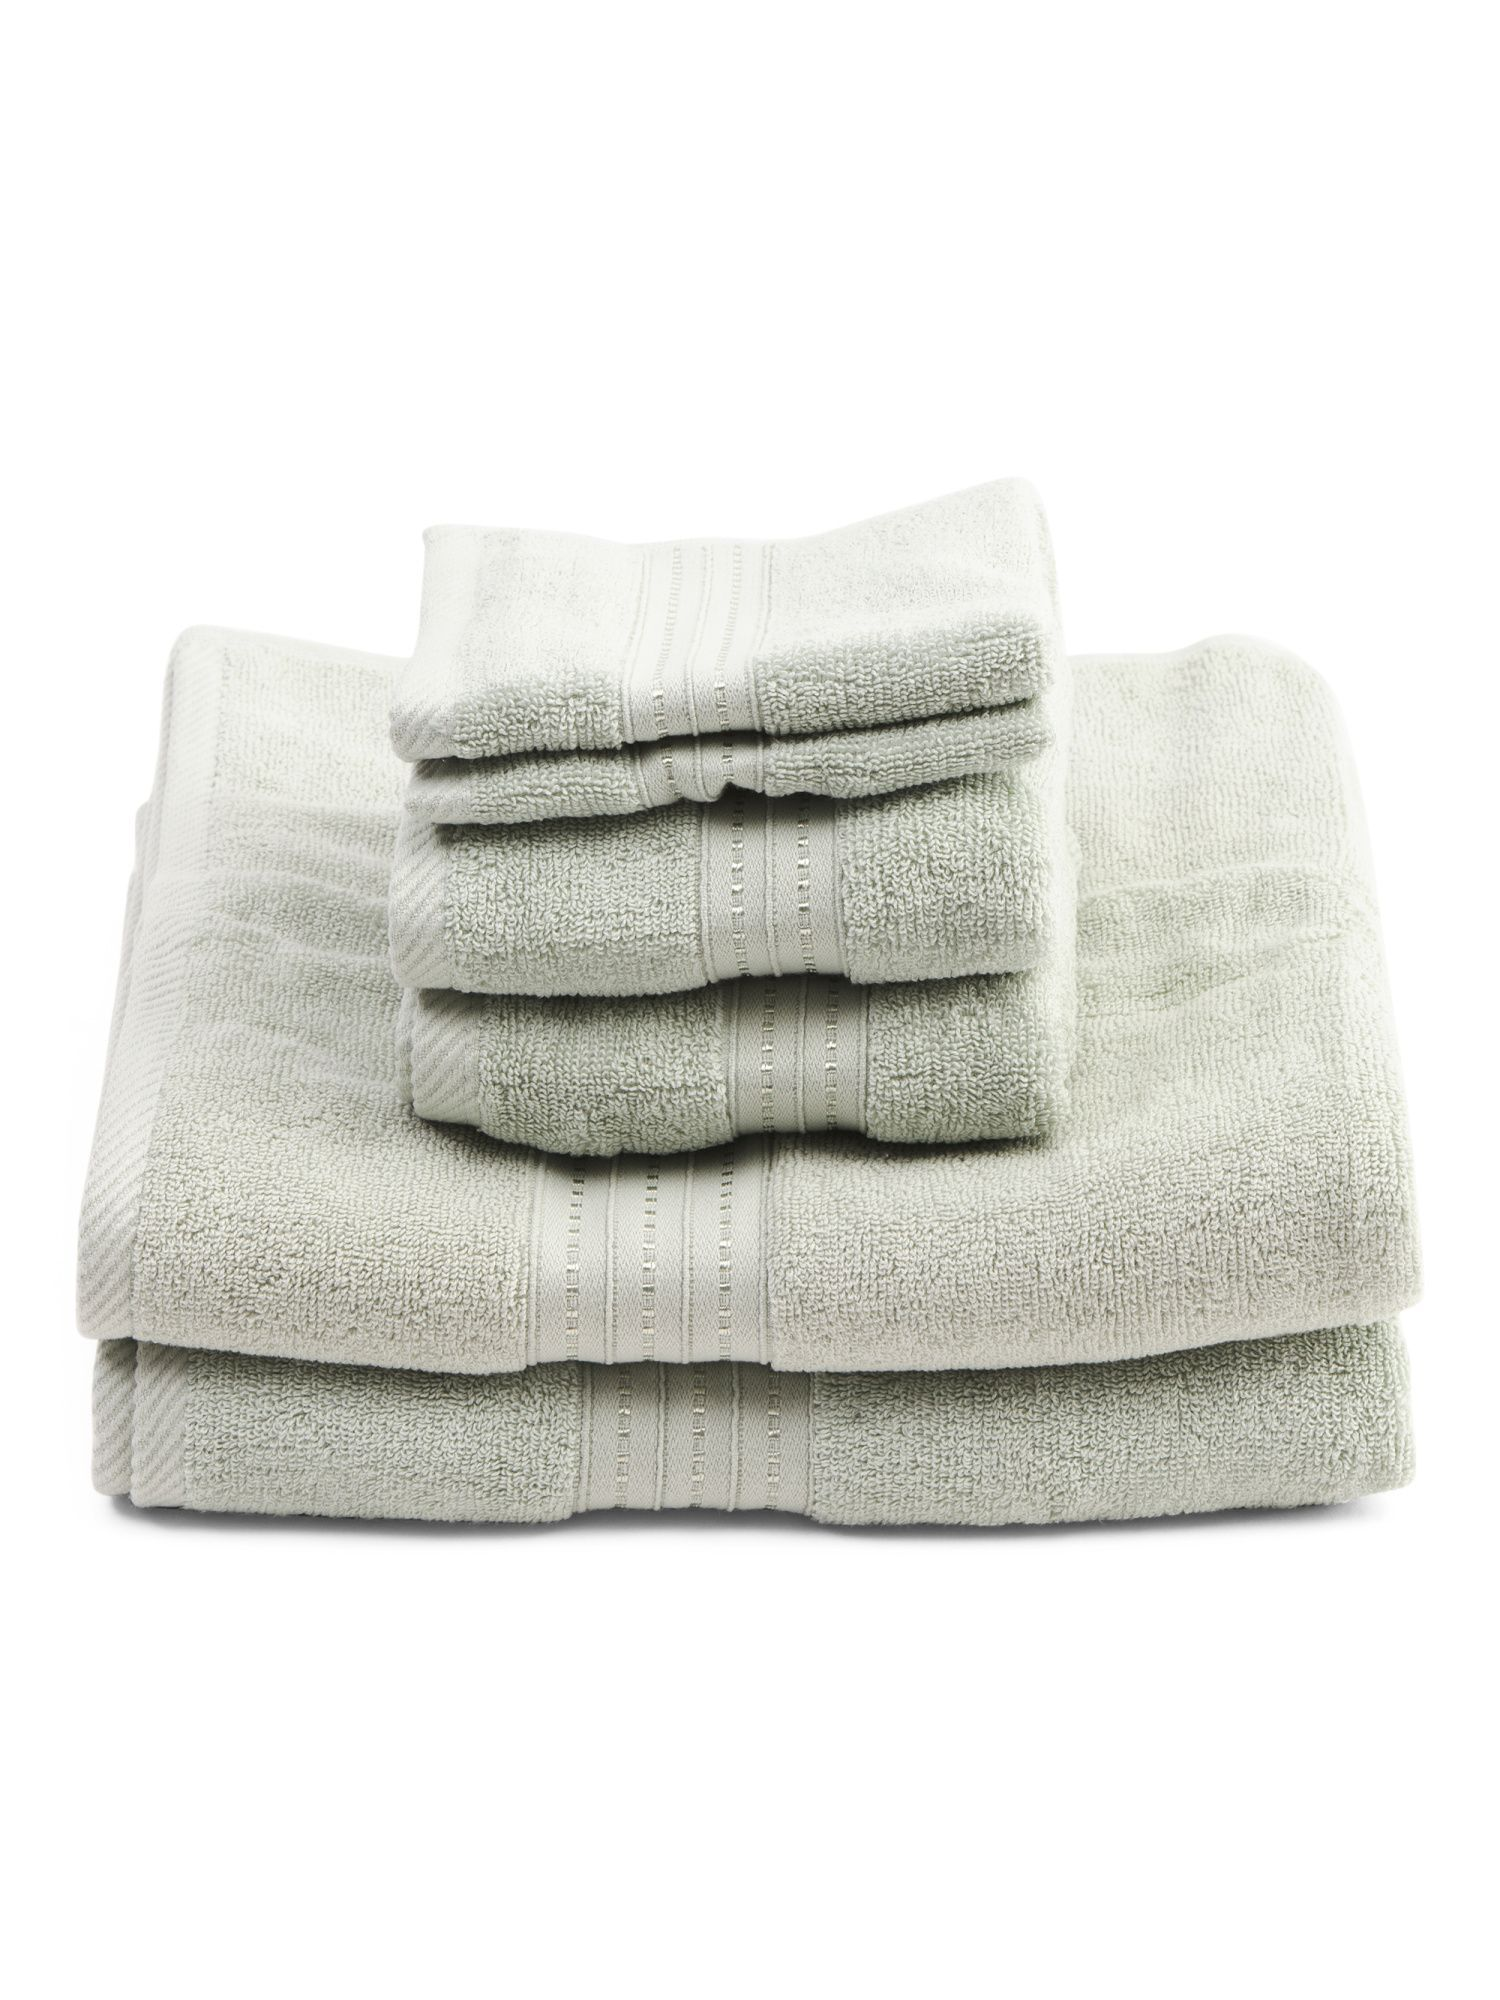 Made In India 6pc Towel Set Products Towel Set Towel India